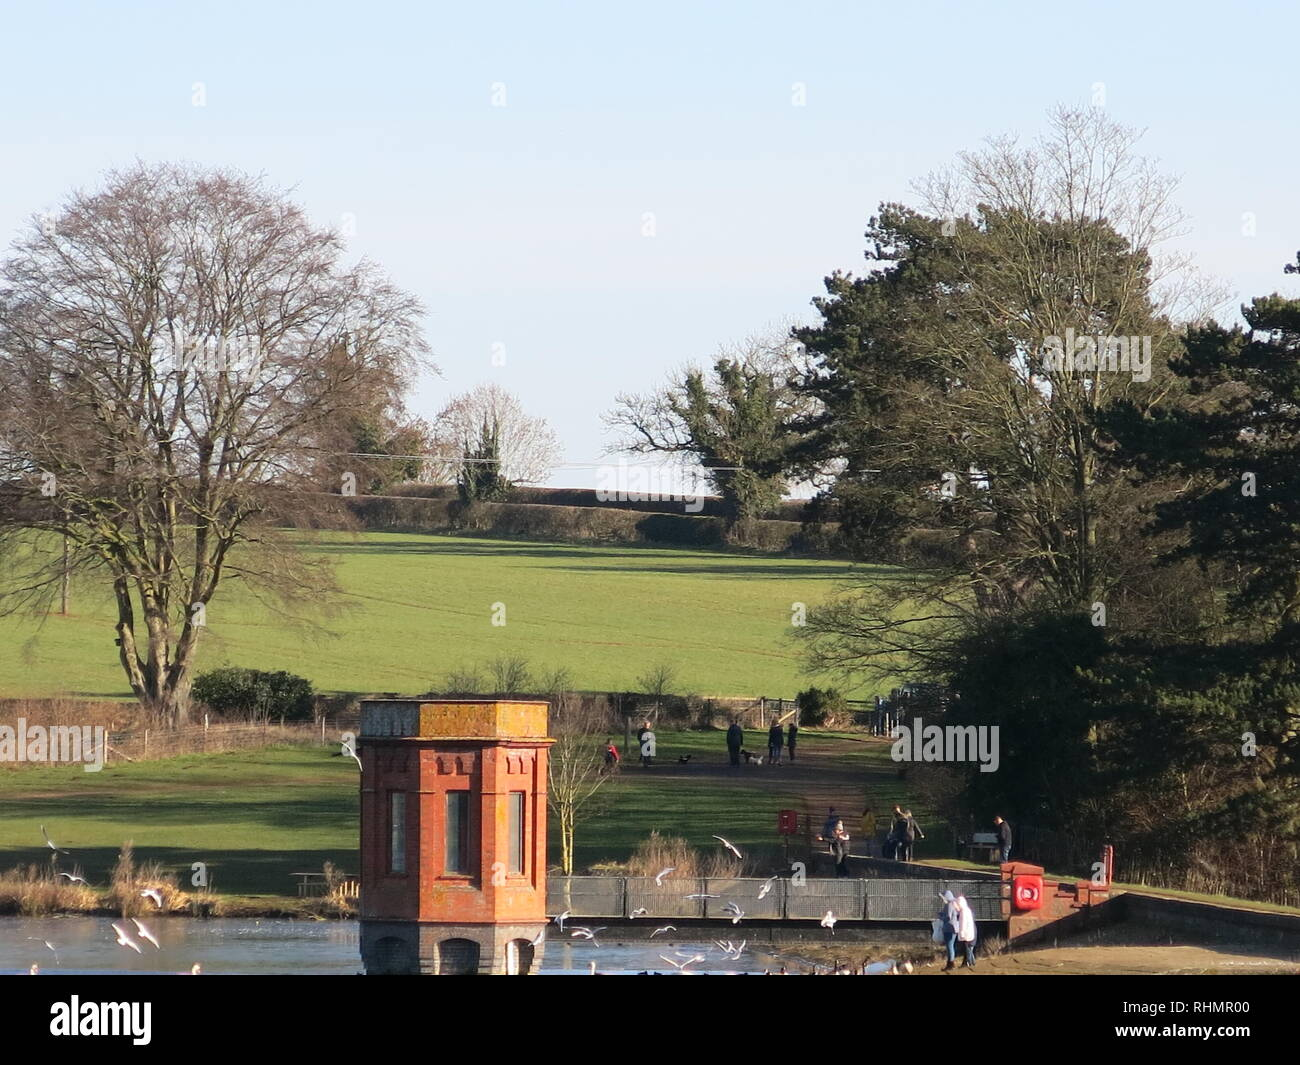 View of the Valve Tower that was part of the engineering for the supply of fresh drinking water at Sywell reservoir, completed 1906. - Stock Image